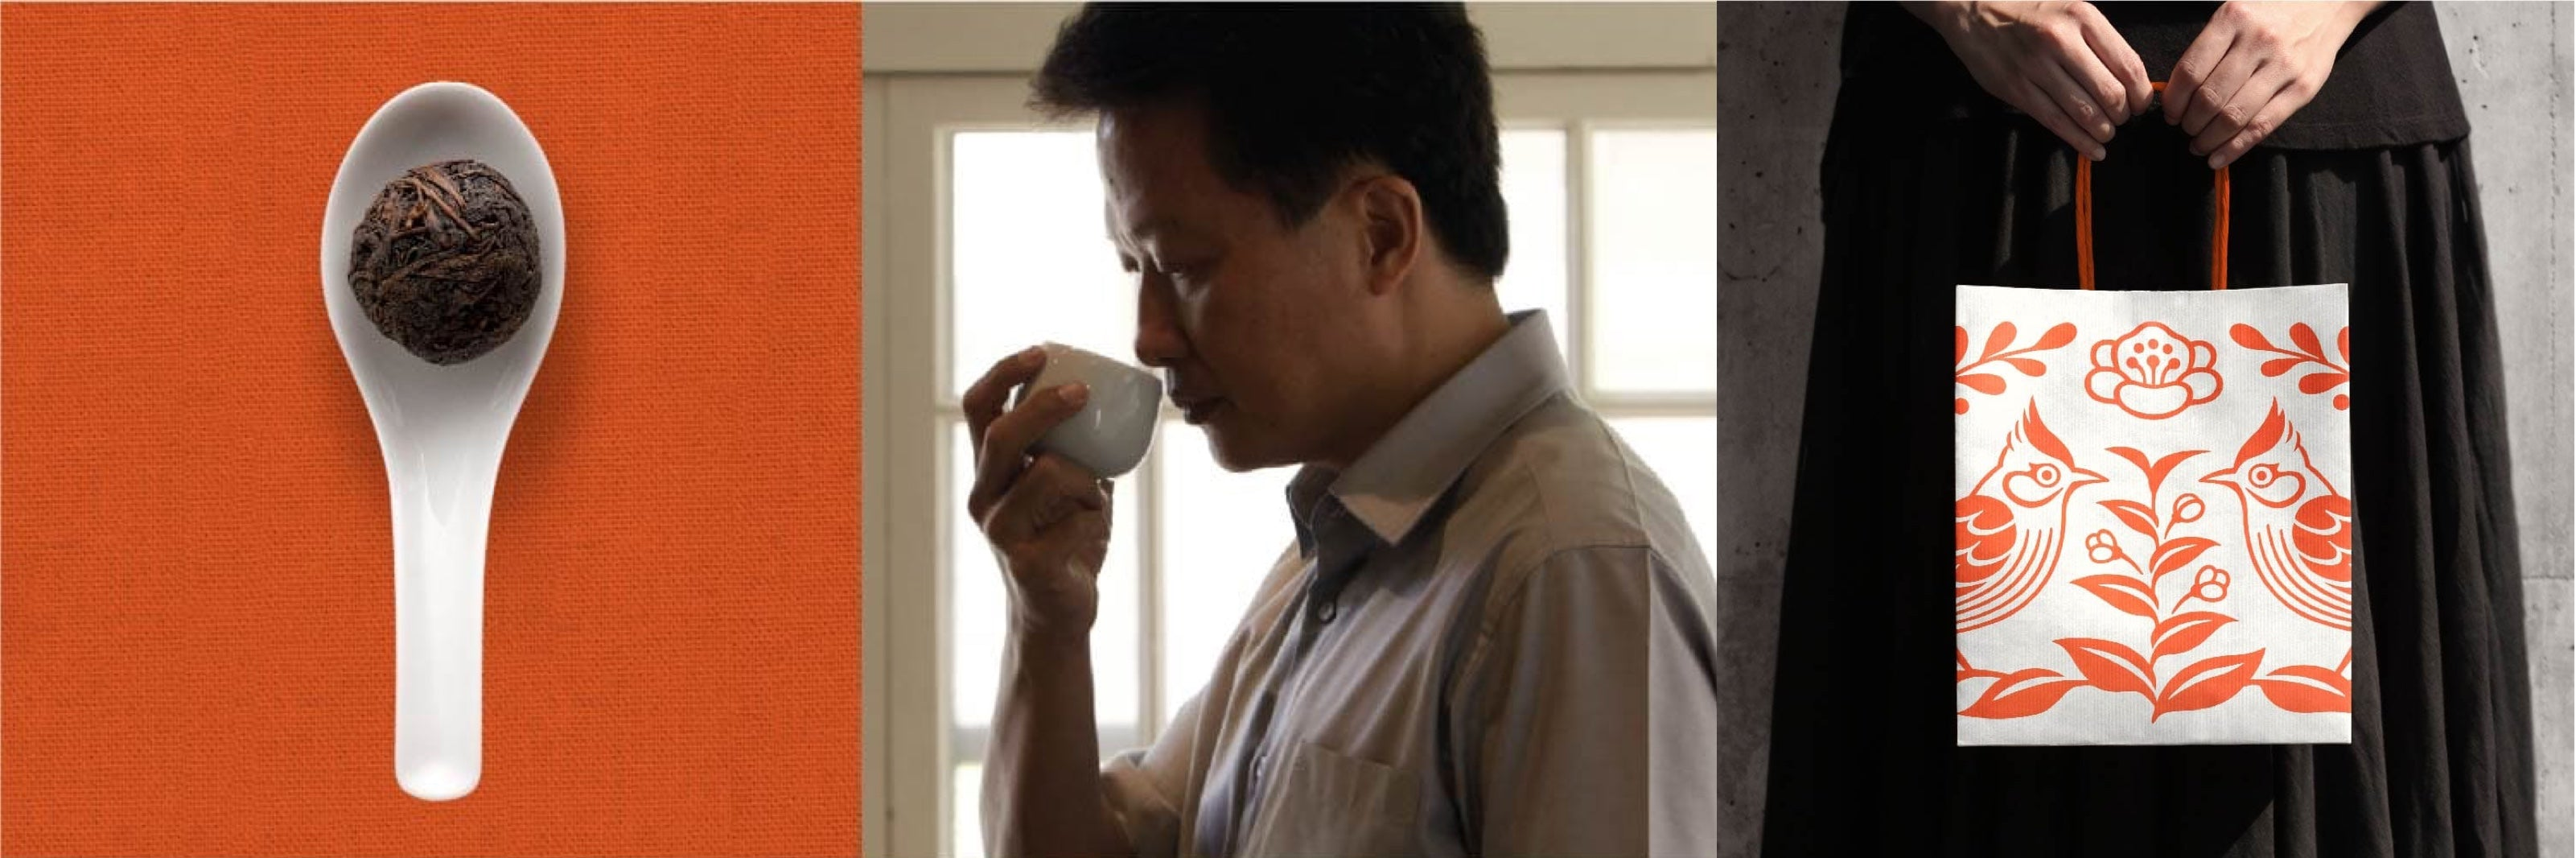 Banner image of tea in a spoon, man sniffing teacup, women holding a shopping bag.